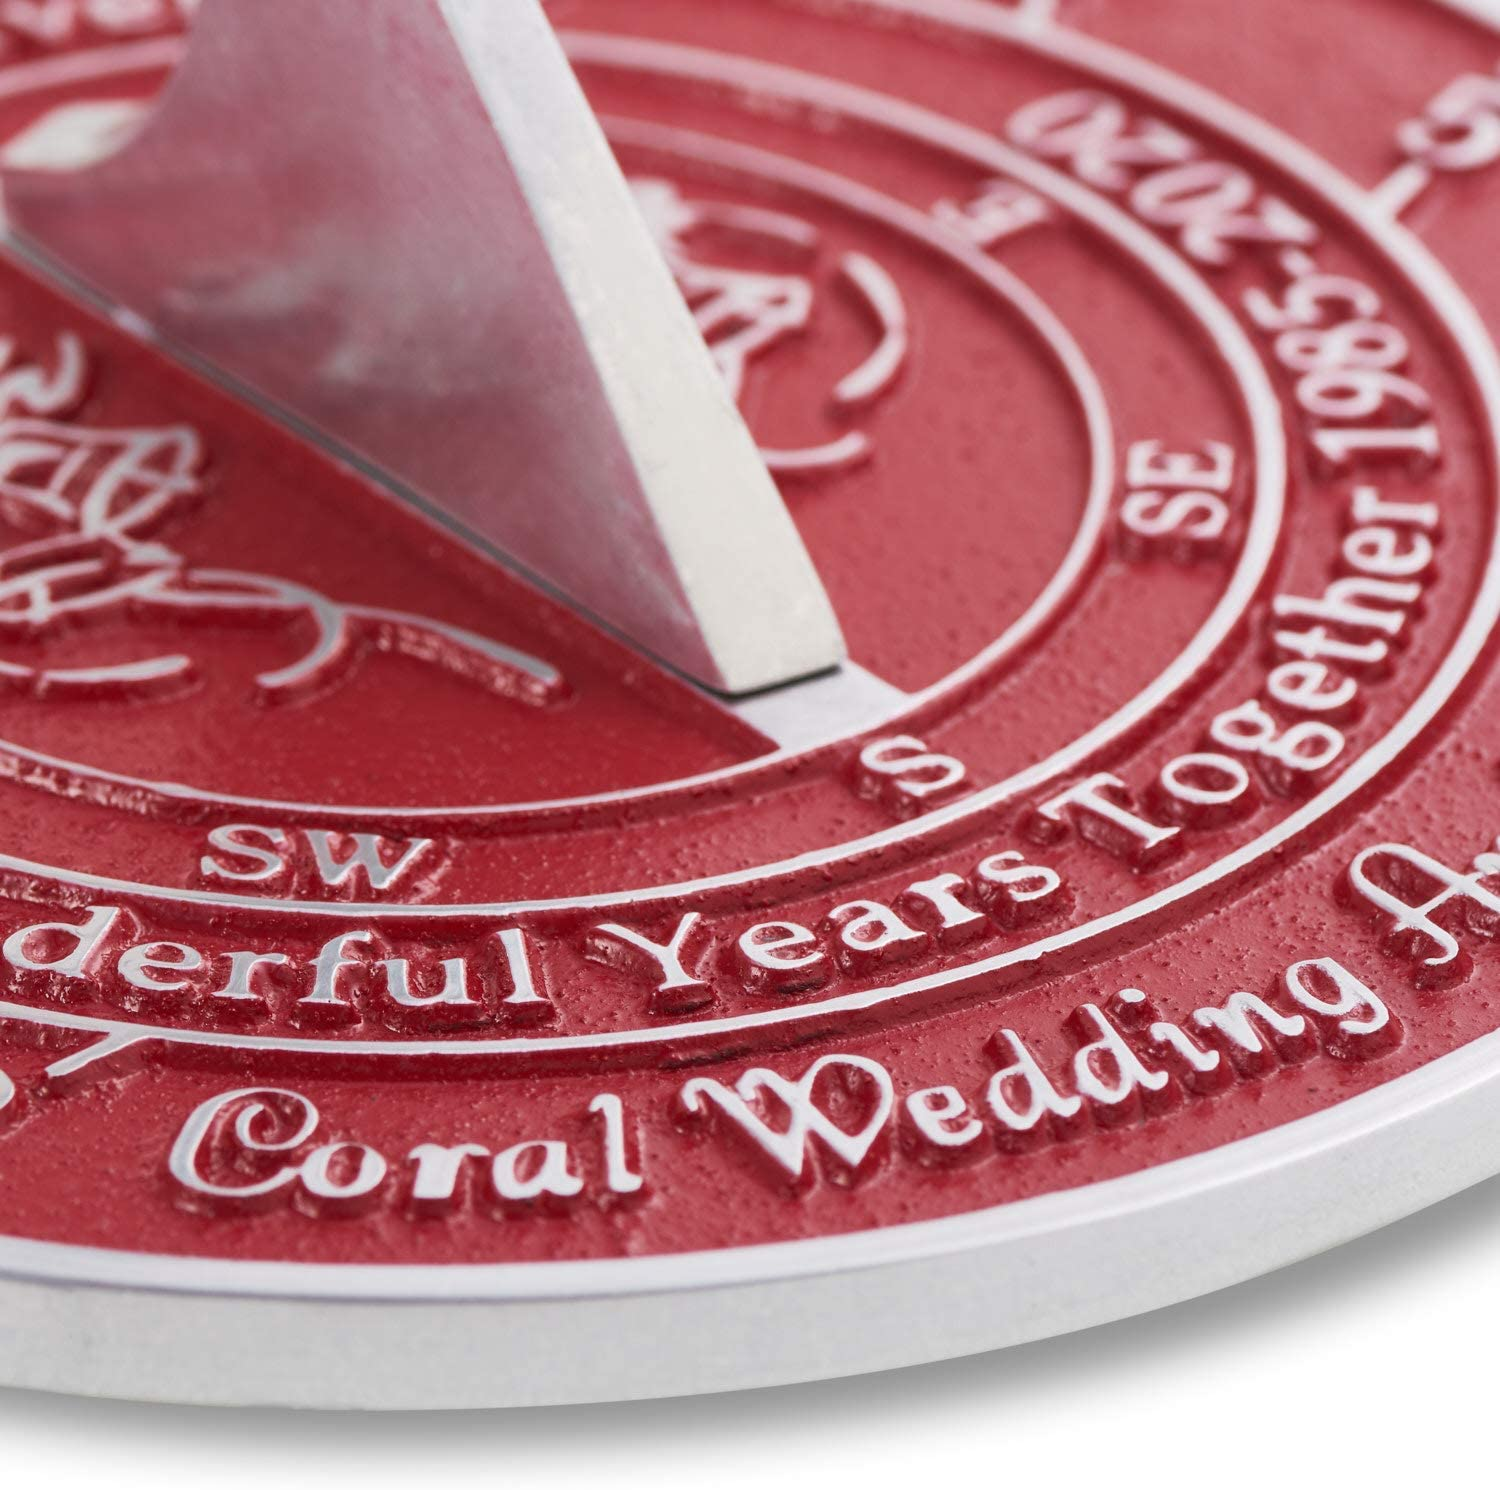 ANTIQUECOLLECTION 35th Coral 2020 Wedding Anniversary Sundial Gift